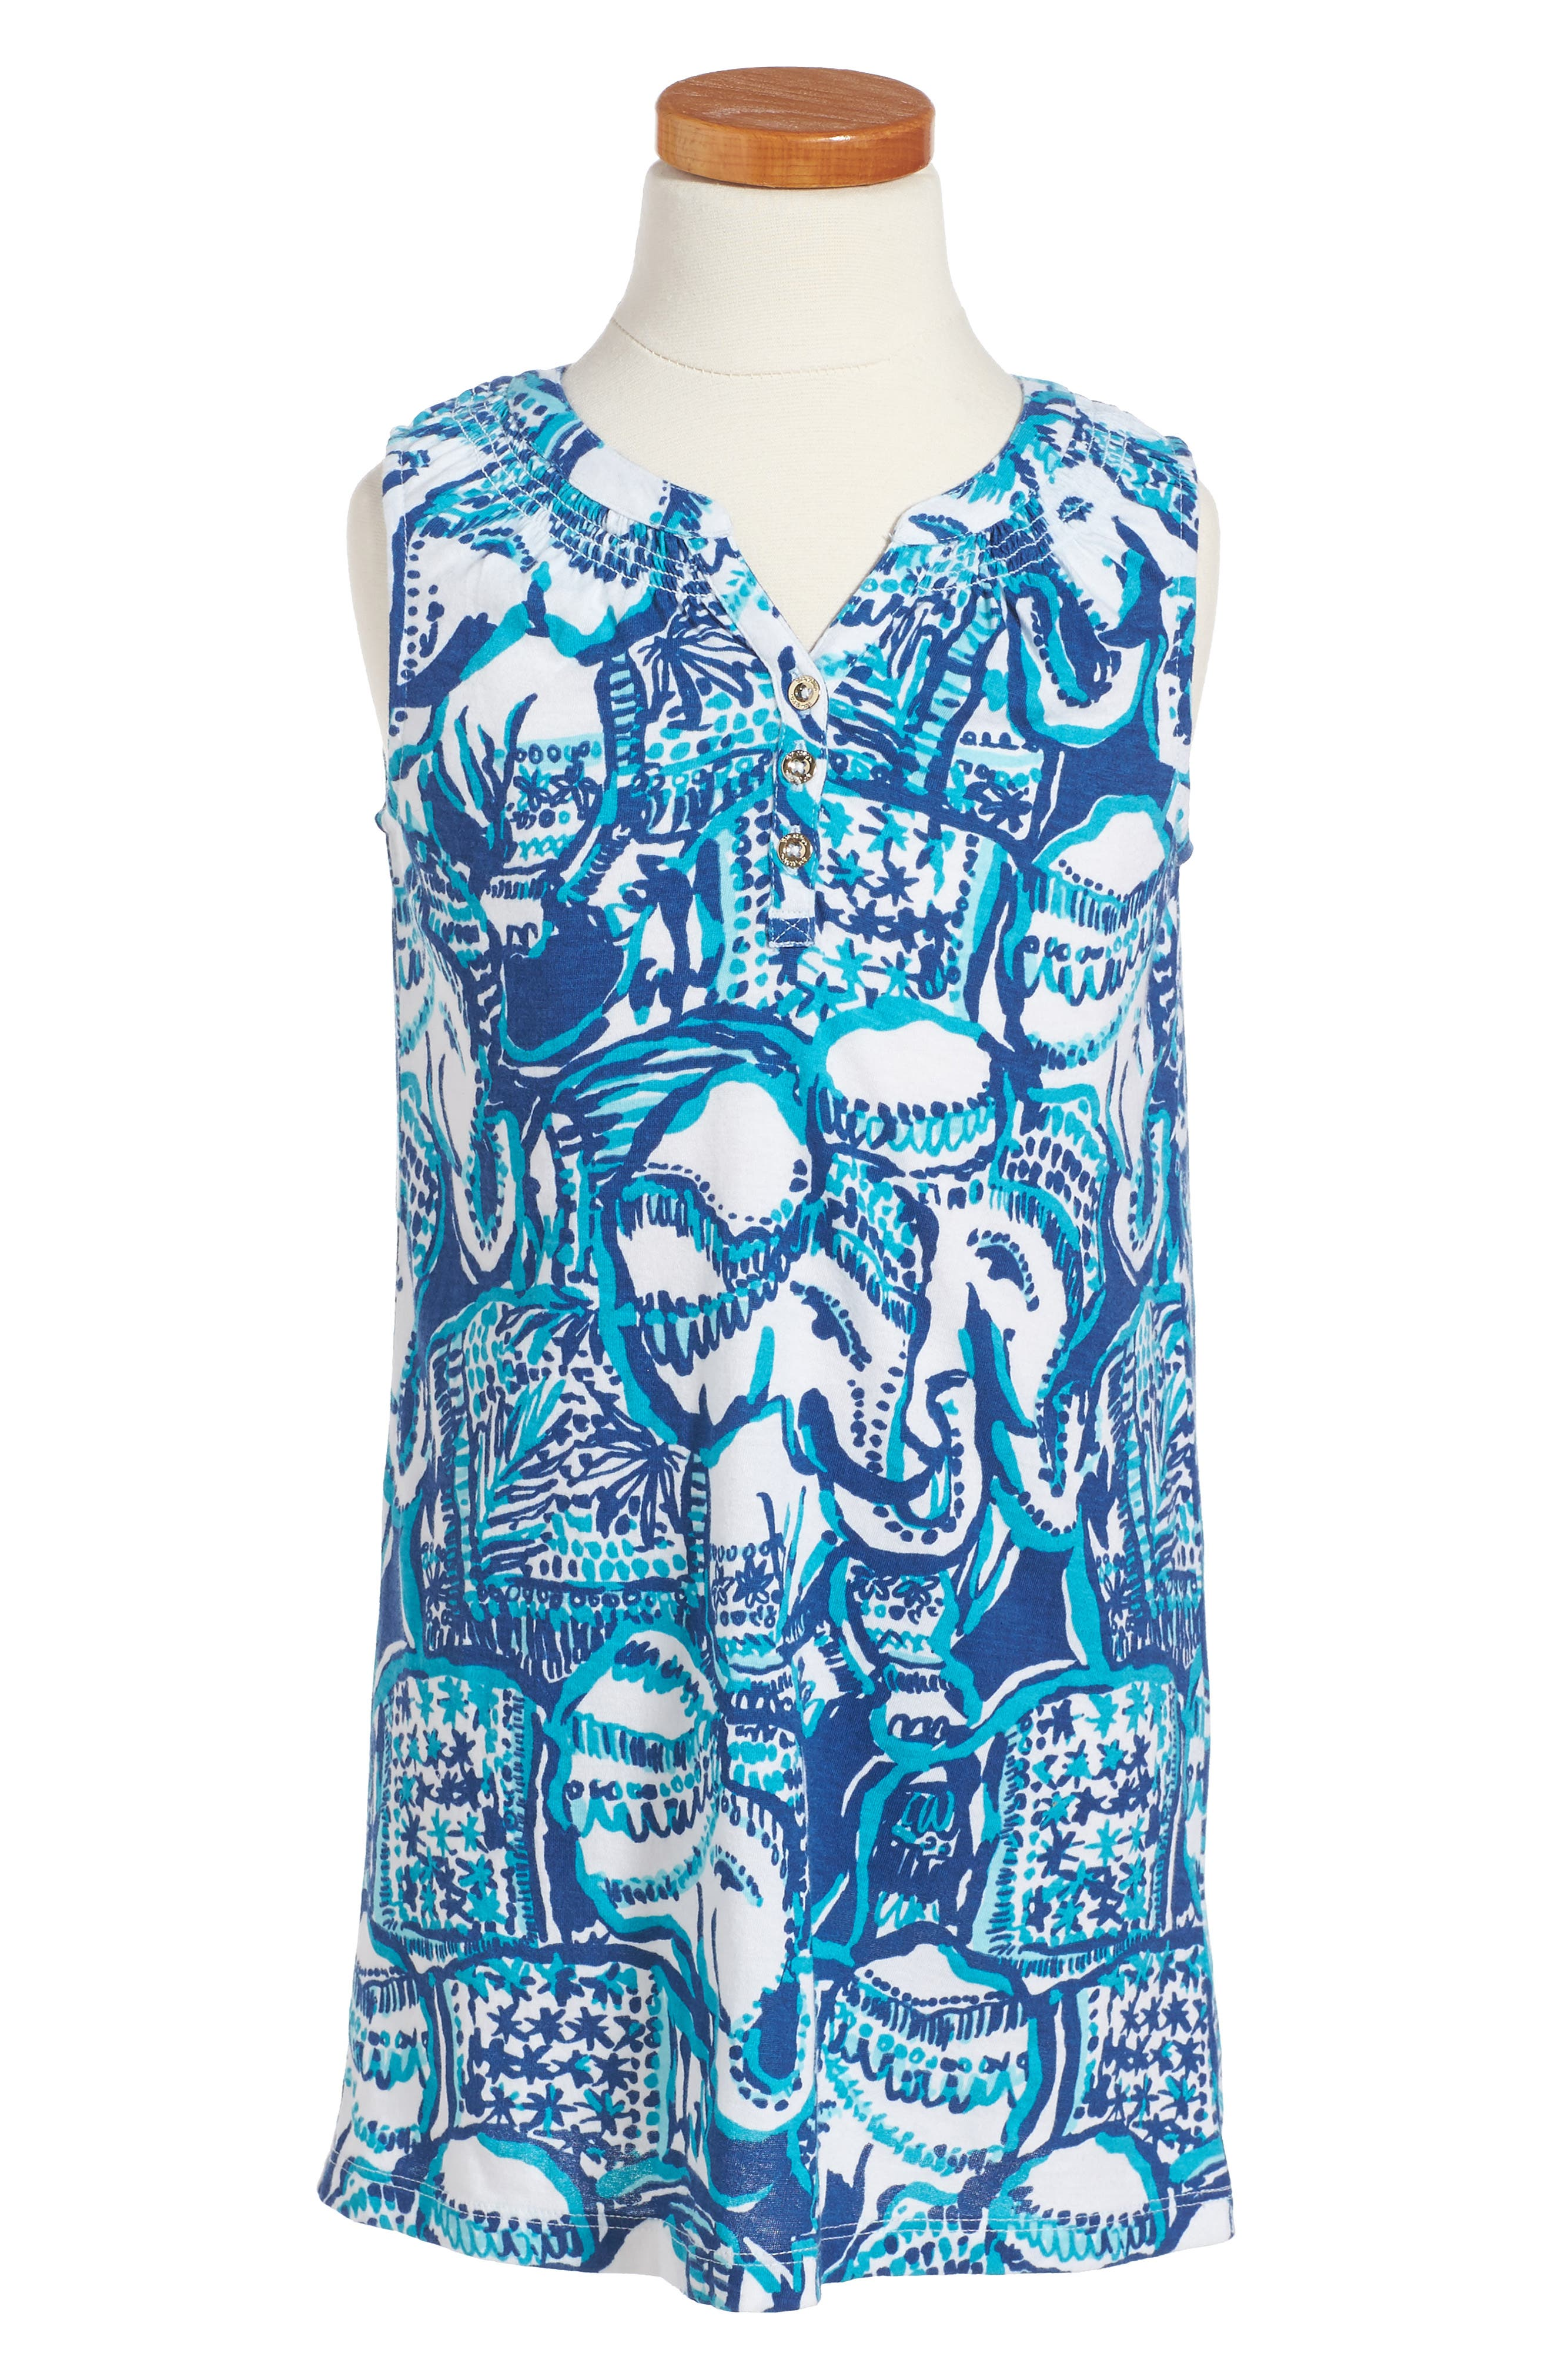 Alternate Image 1 Selected - Lilly Pulitzer® Mini Essie Shift Dress (Toddler Girls, Little Girls & Big Girls)